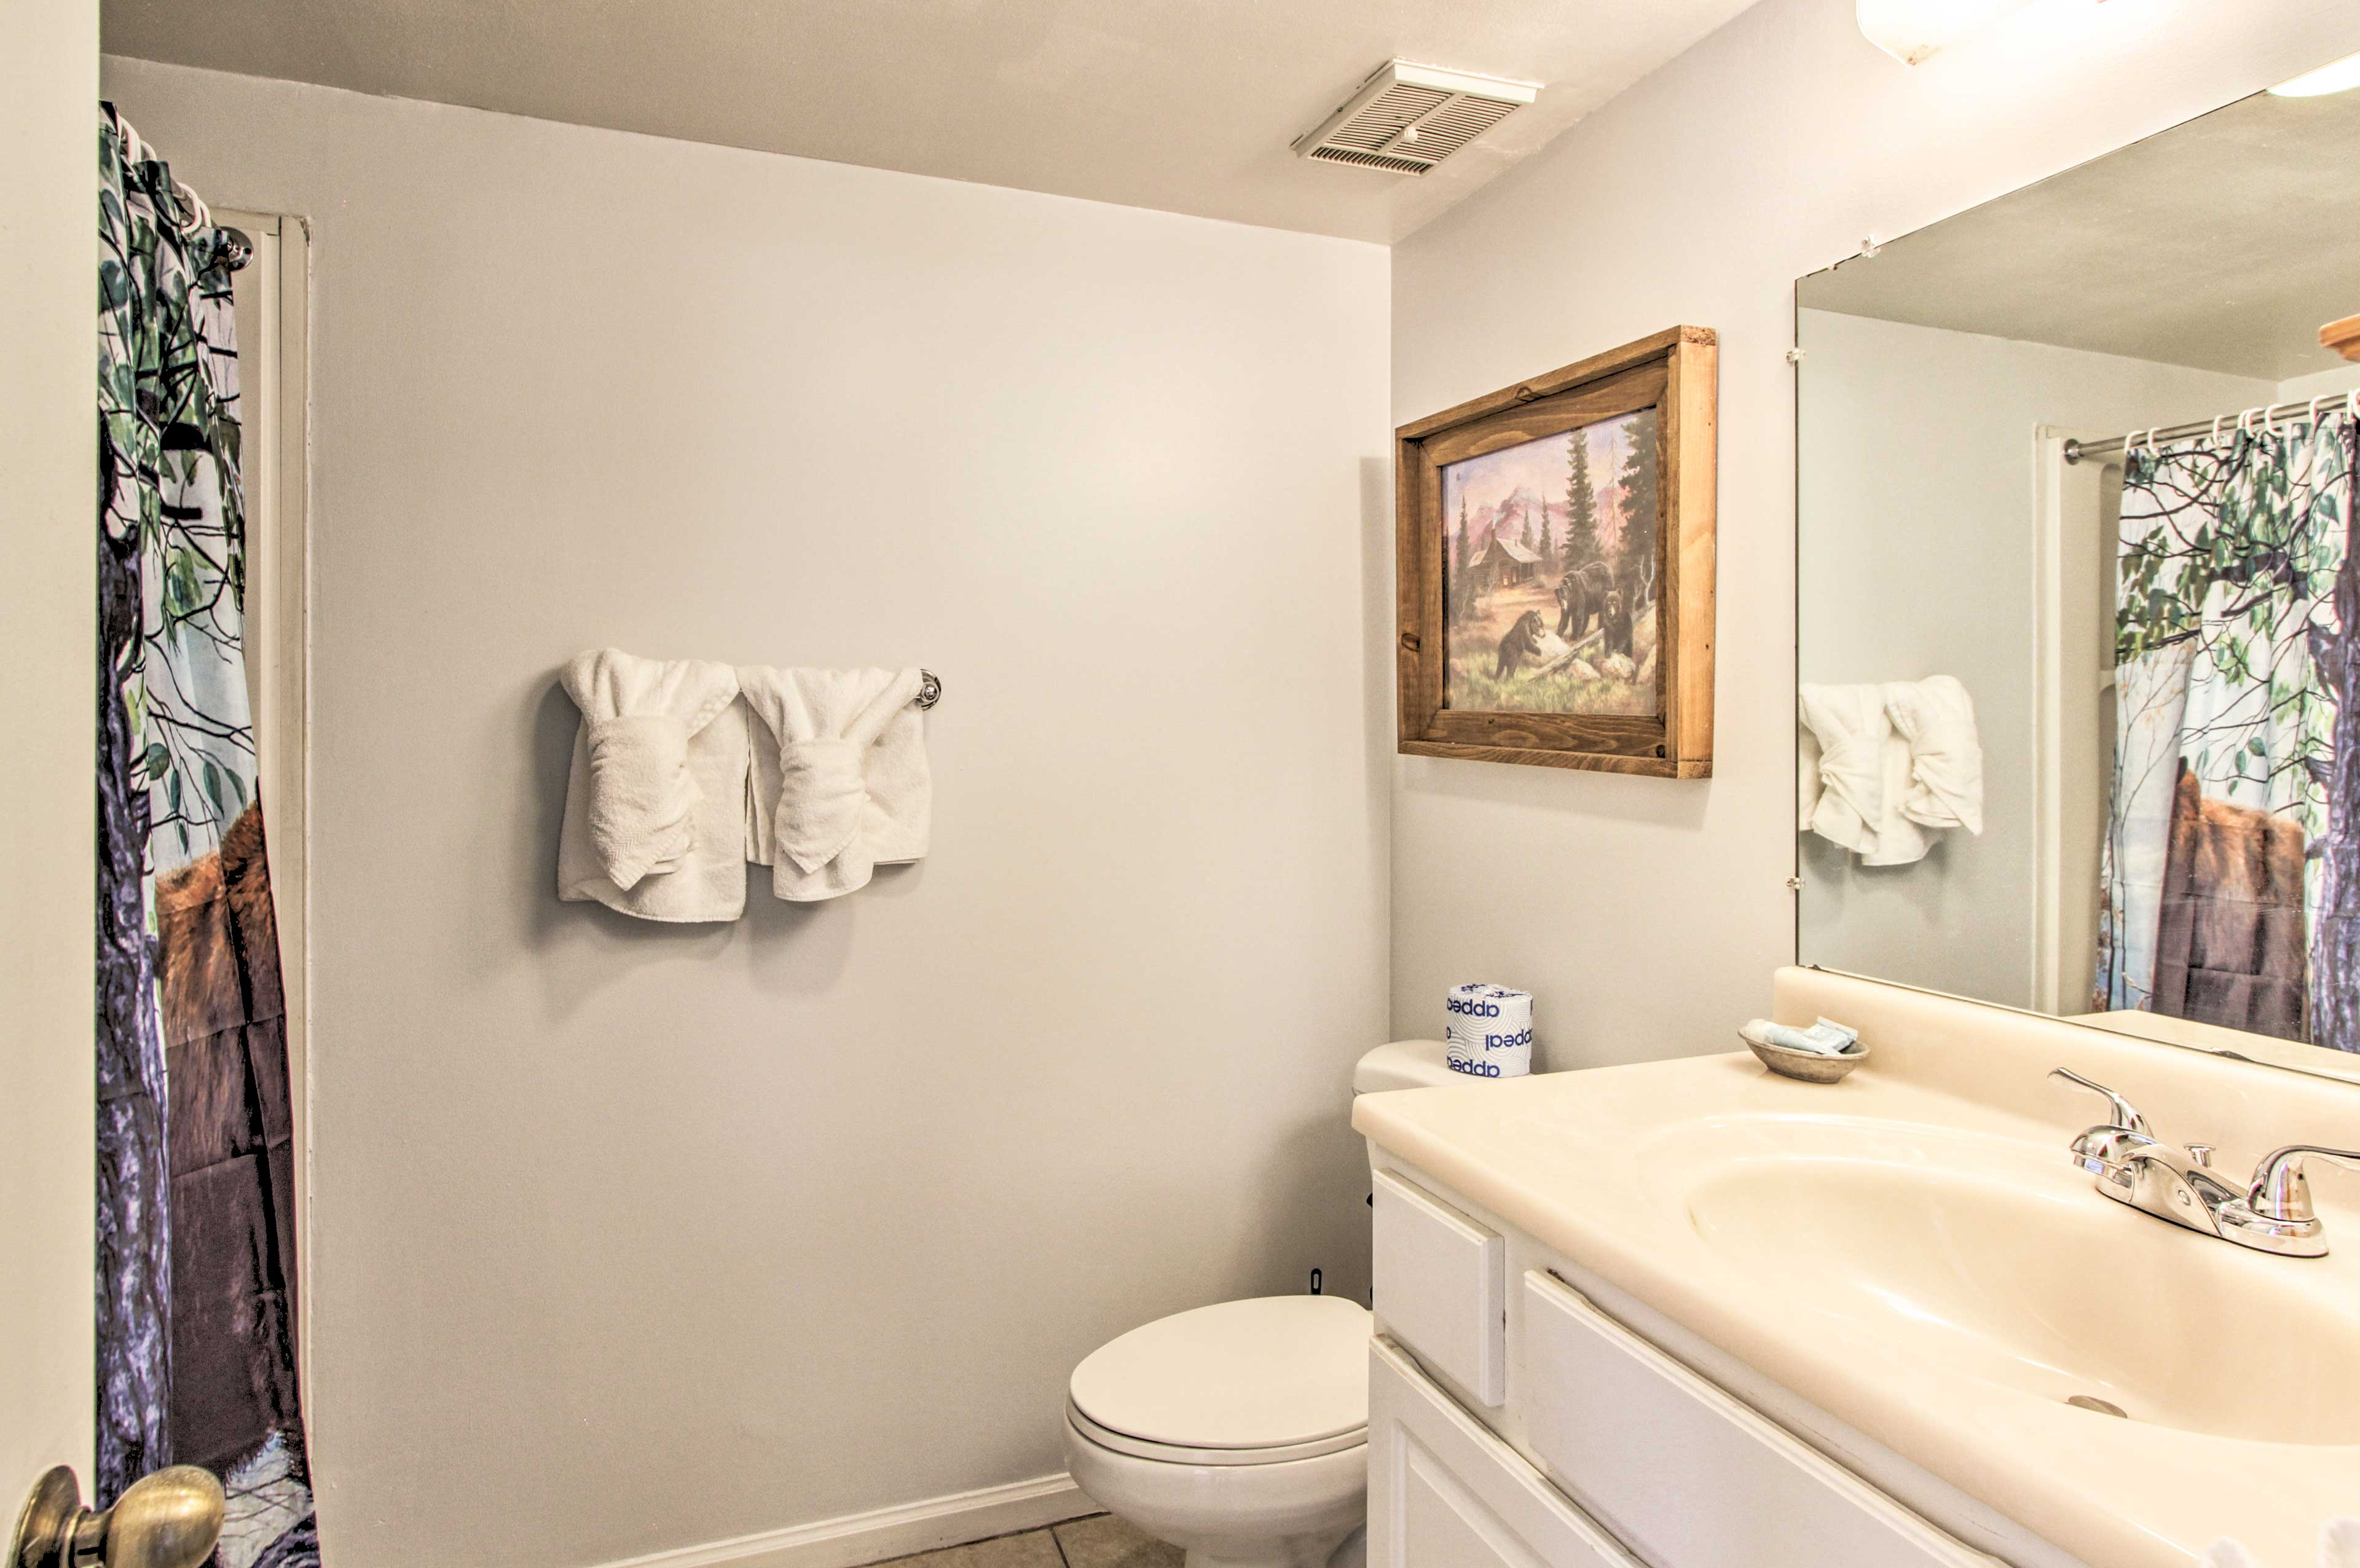 With 2 full bathrooms, it will be easy to get ready in the morning.